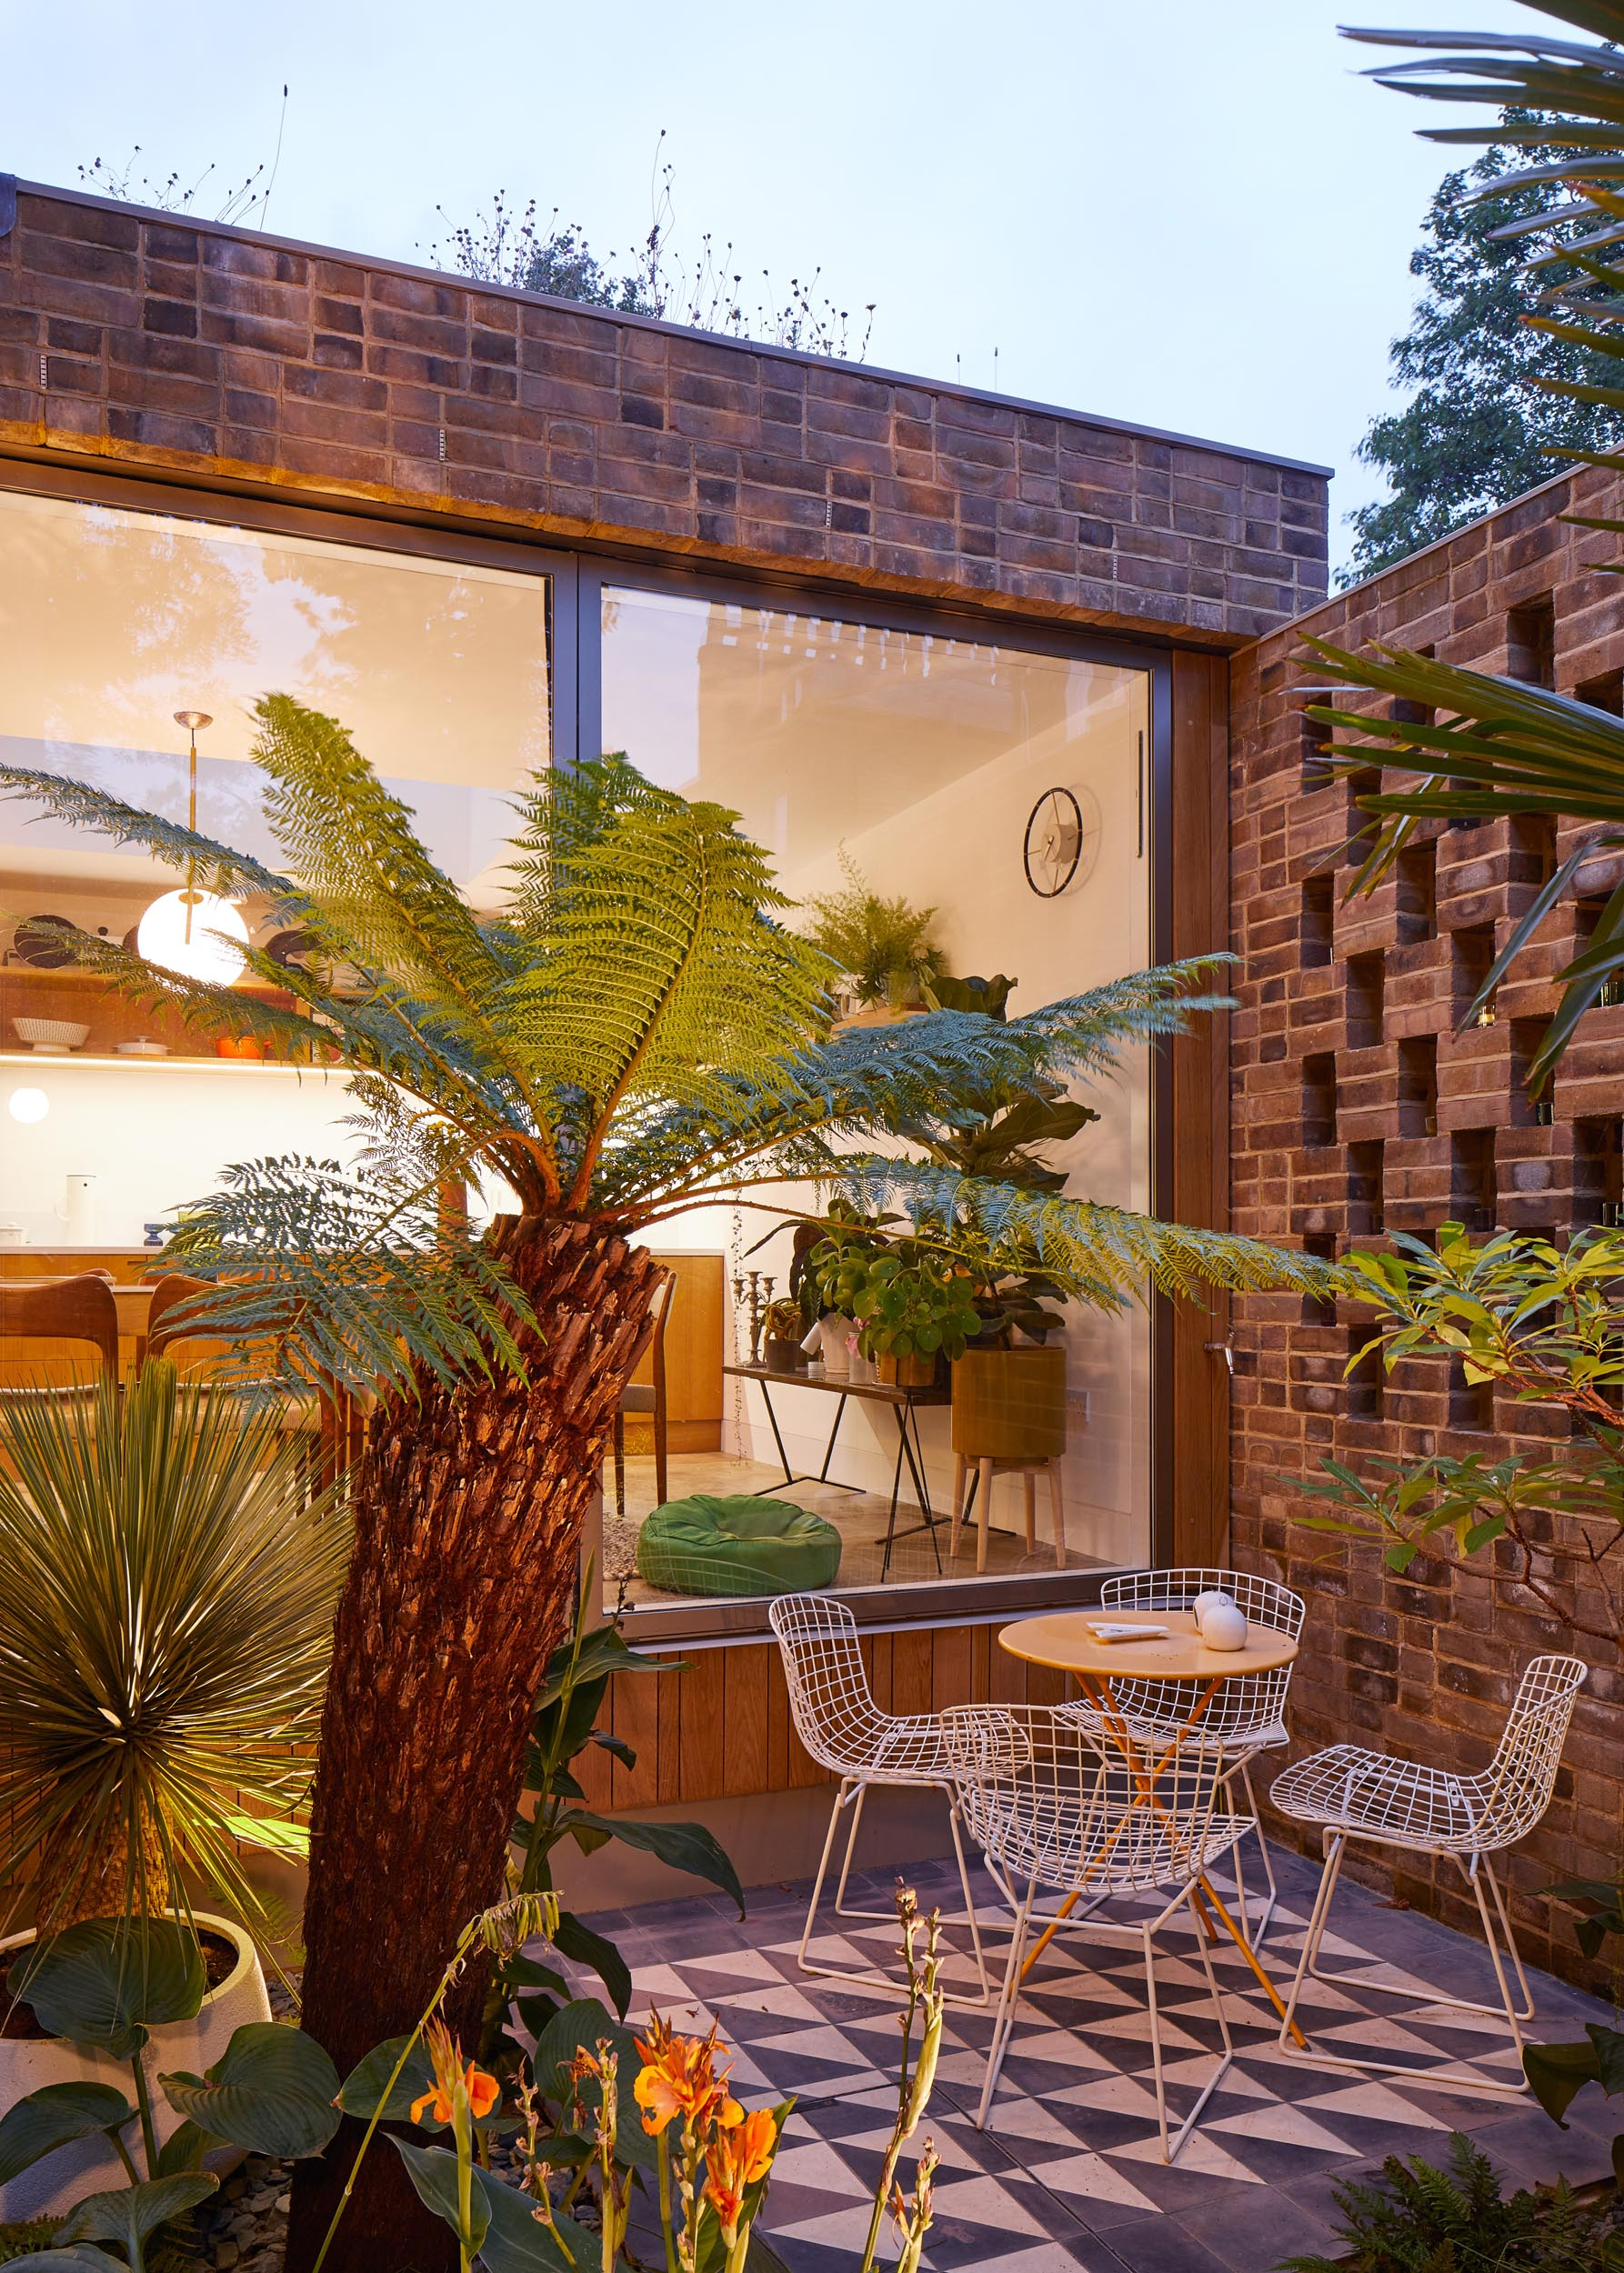 APERTURE HOUSE, LONDON: PAUL ARCHER DESIGN